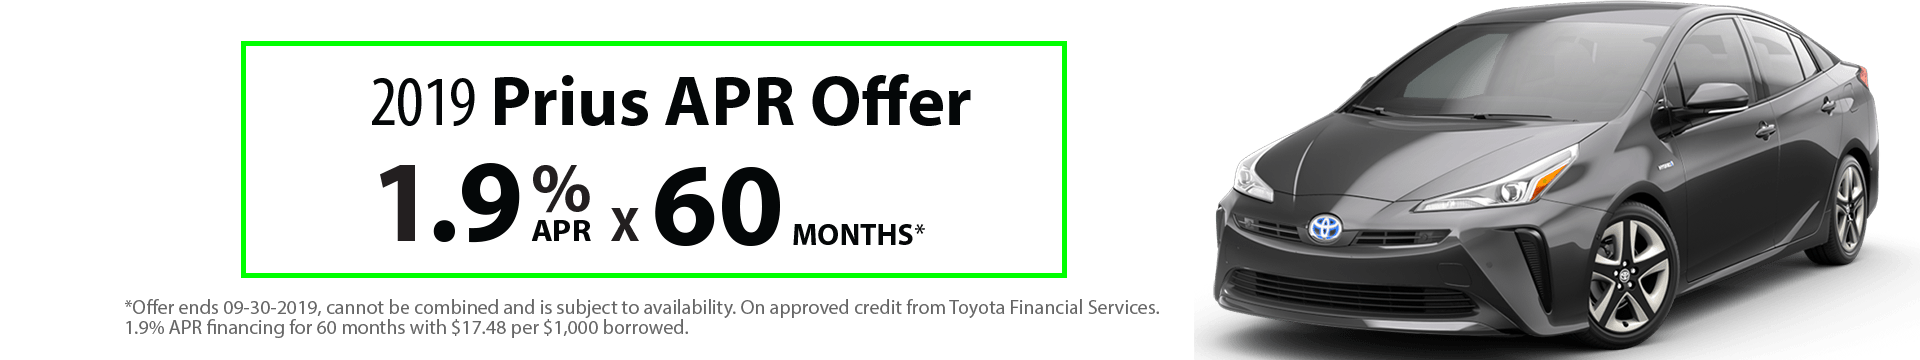 2019 Prius 1.9% x 60 months Special Finance Offer